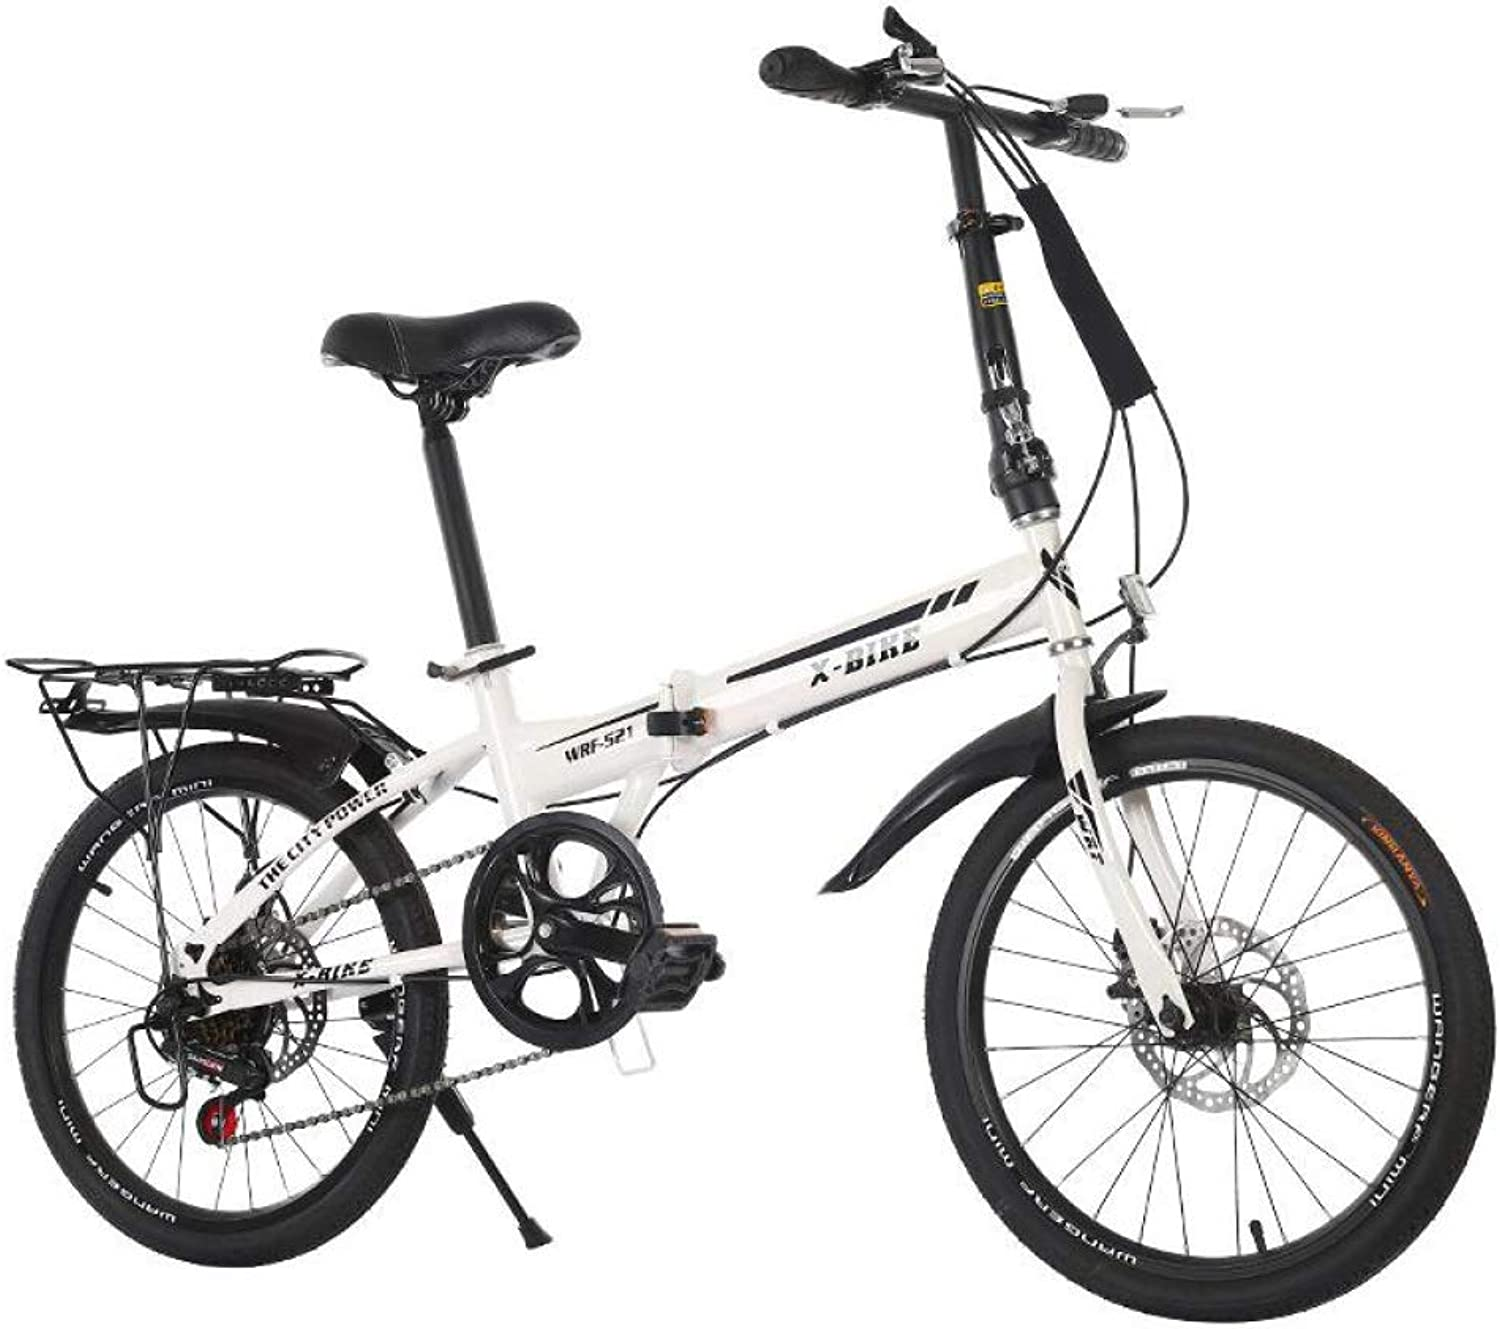 AOHMG Folding Bike Adult Lightweight Folding Bicycle, 6Speeds Derailleur Comfort Saddle